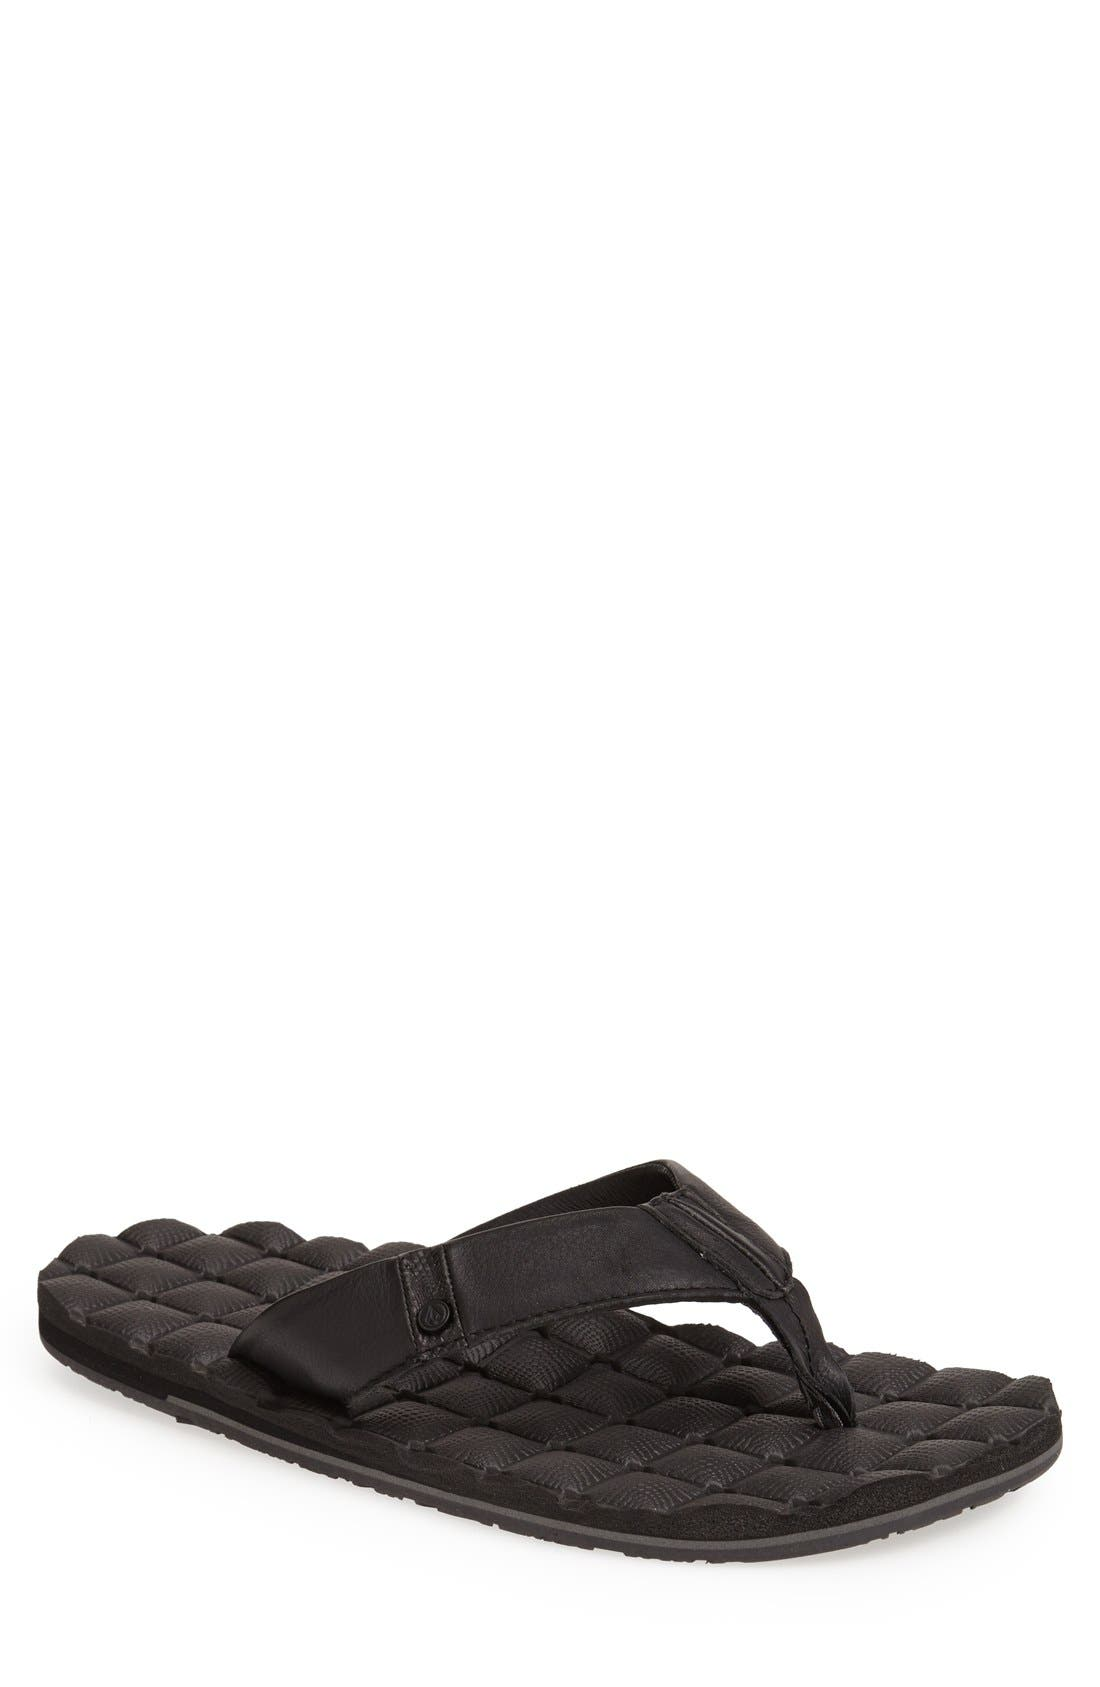 Main Image - Volcom 'Recliner' Leather Flip Flop (Men)